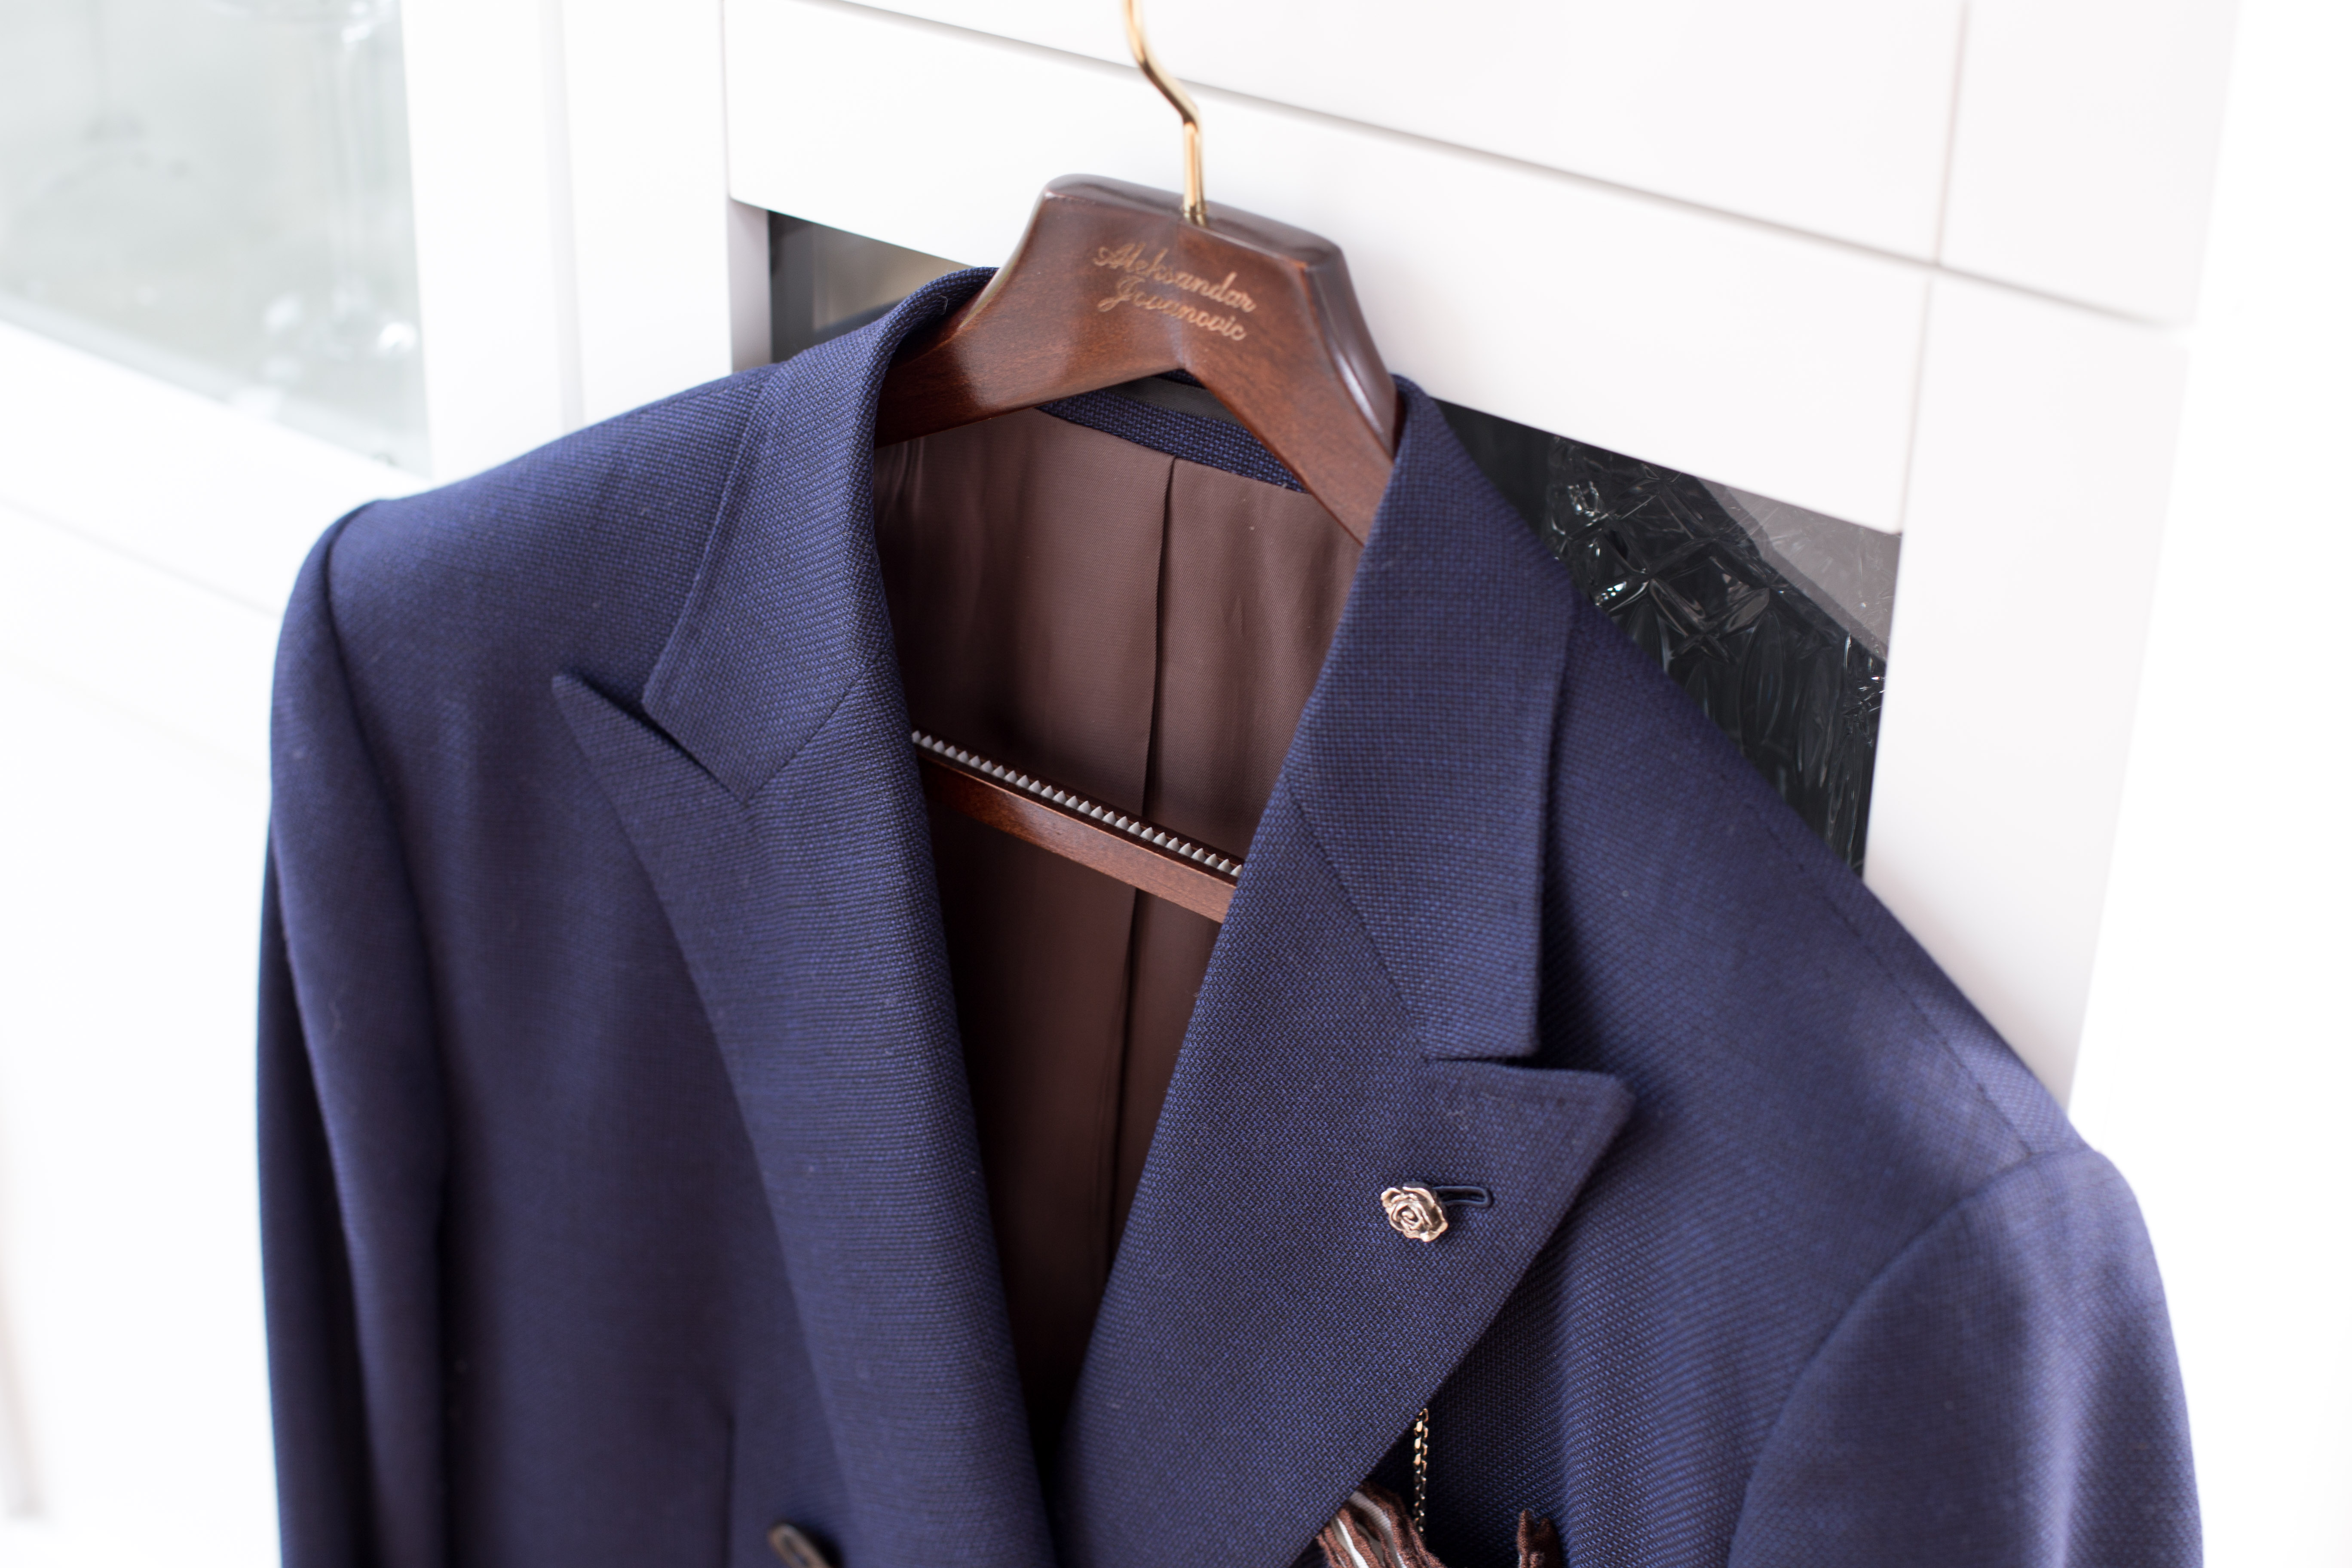 How to take care of your suits